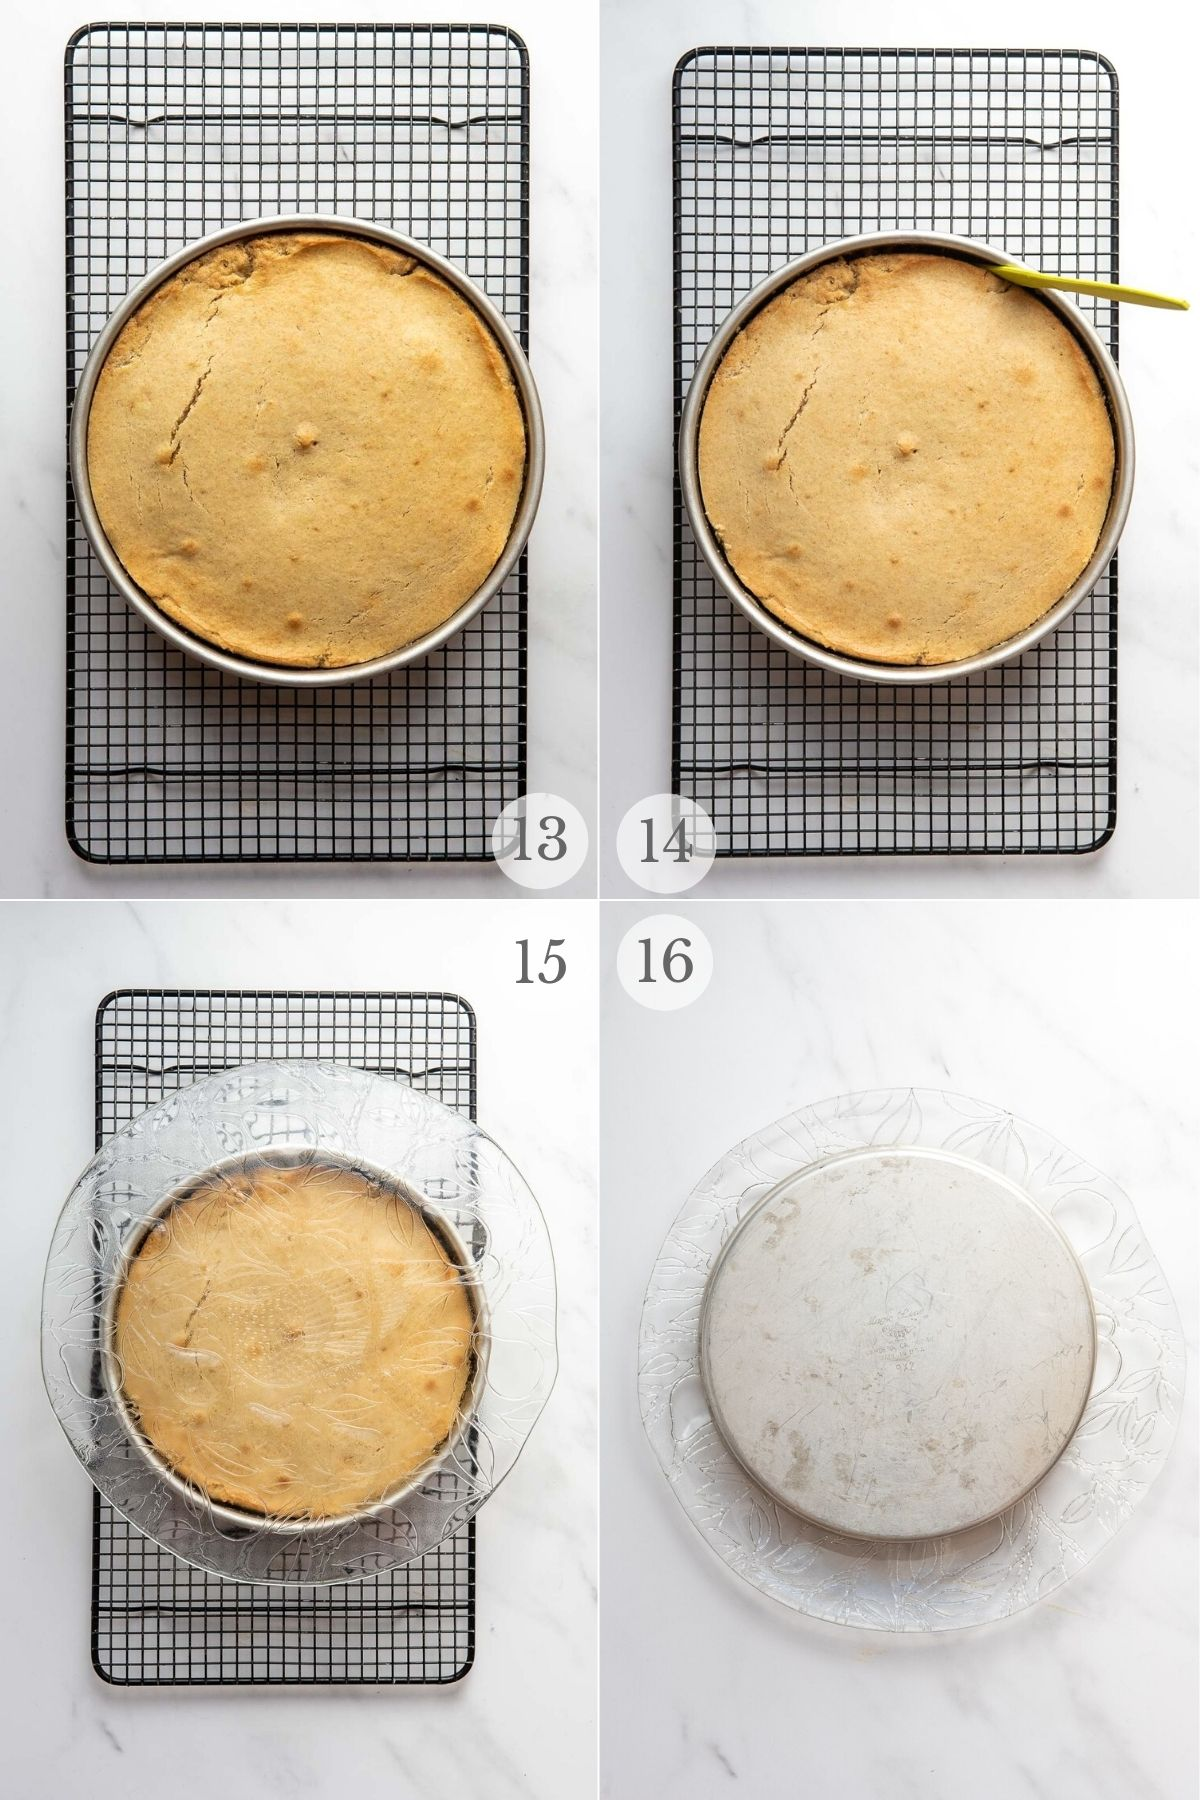 peach upside down cake recipe steps 13-16